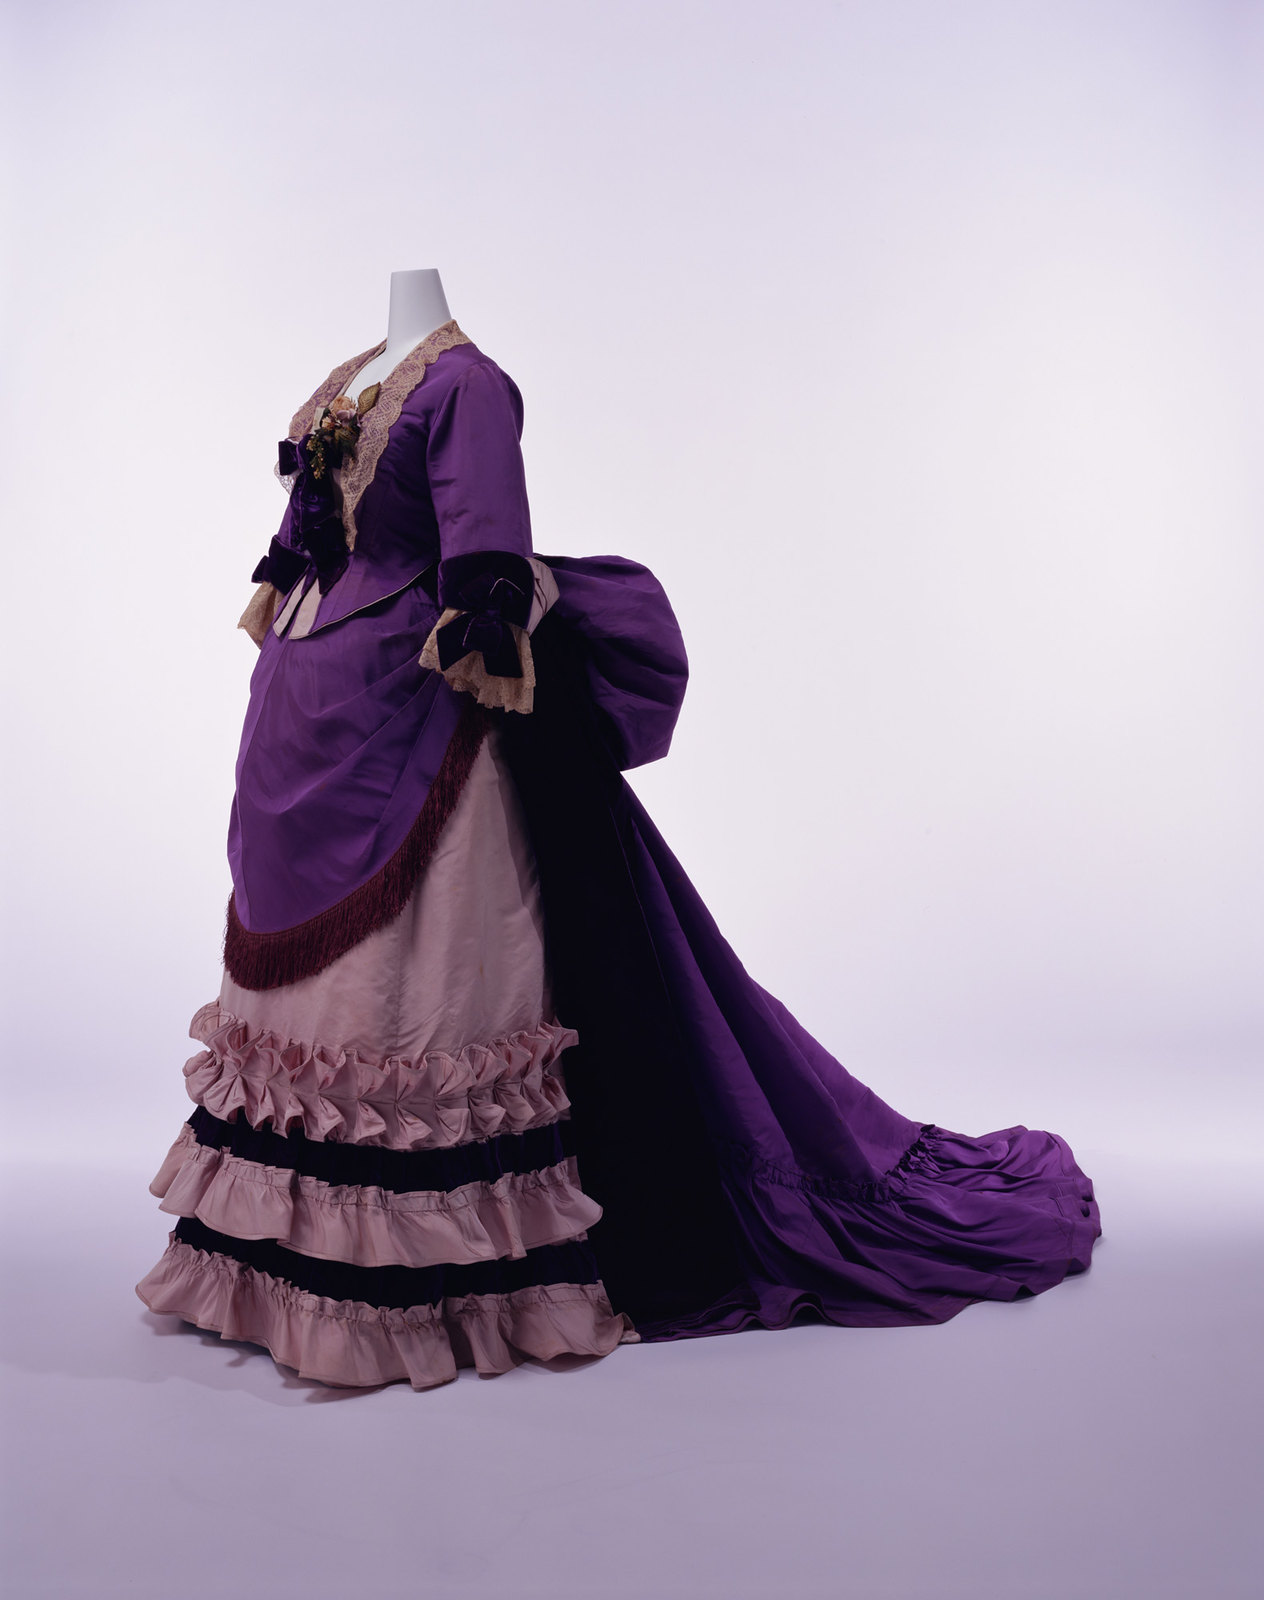 1894. Afternoon Dress. Silk faille set of bodice and skirt; silk lace and velvet bows at neck and cuffs; apron-shaped overskirt with silk fringe at front. Credit KCI